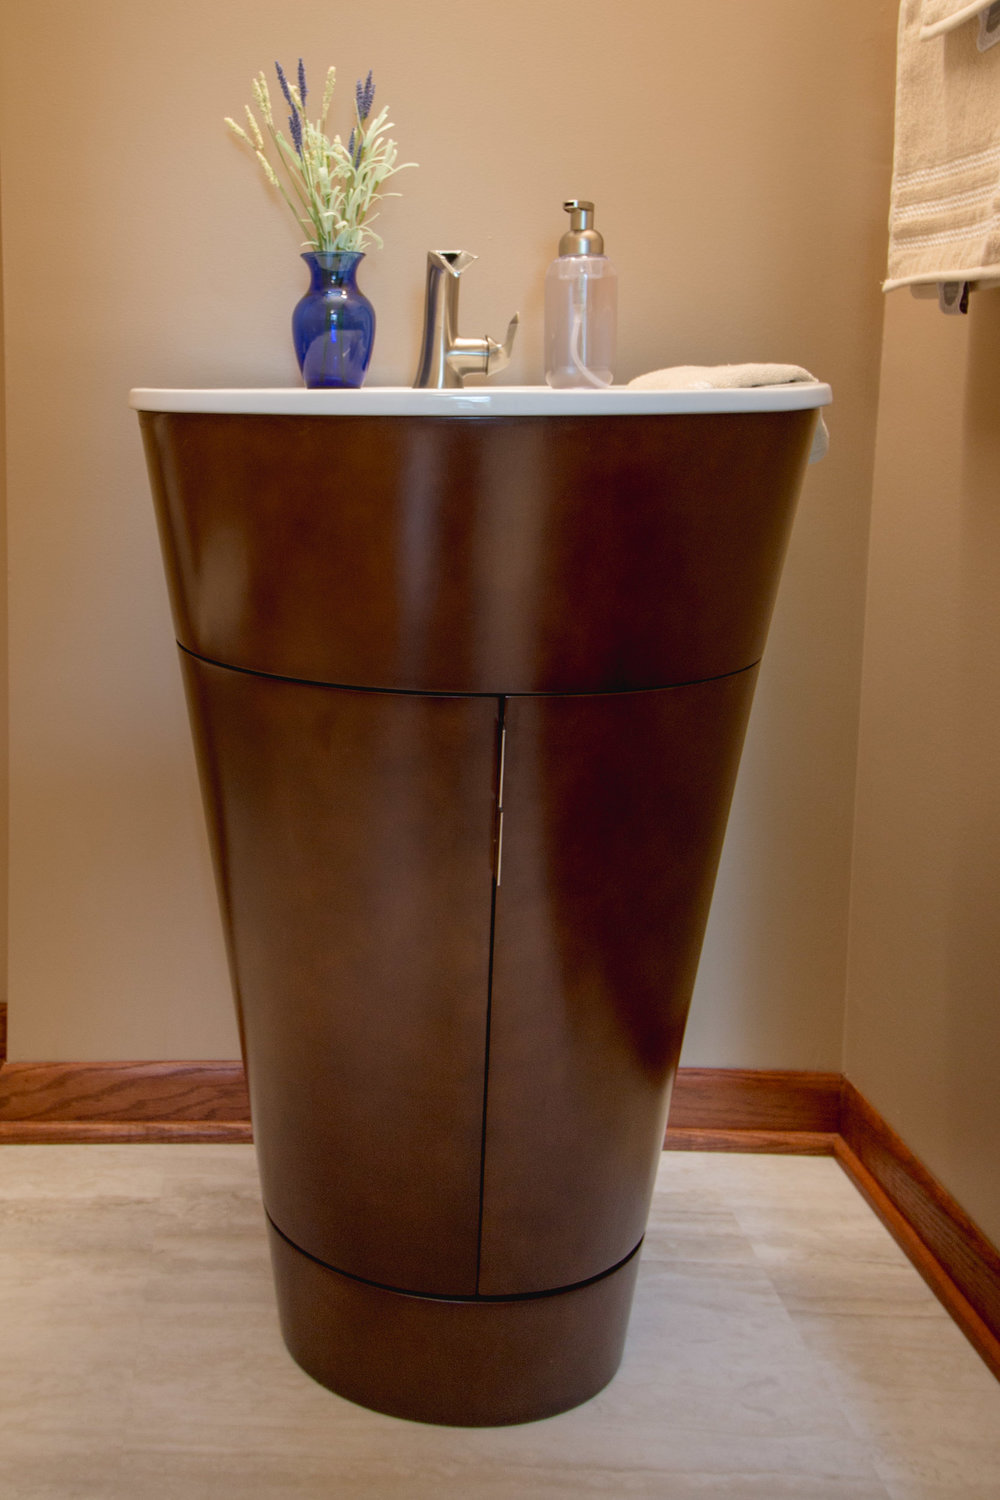 - This pre-manufactured vanity is about the size of a pedestal sink, but provides storage and a sense of elegant whimsy in its shape.